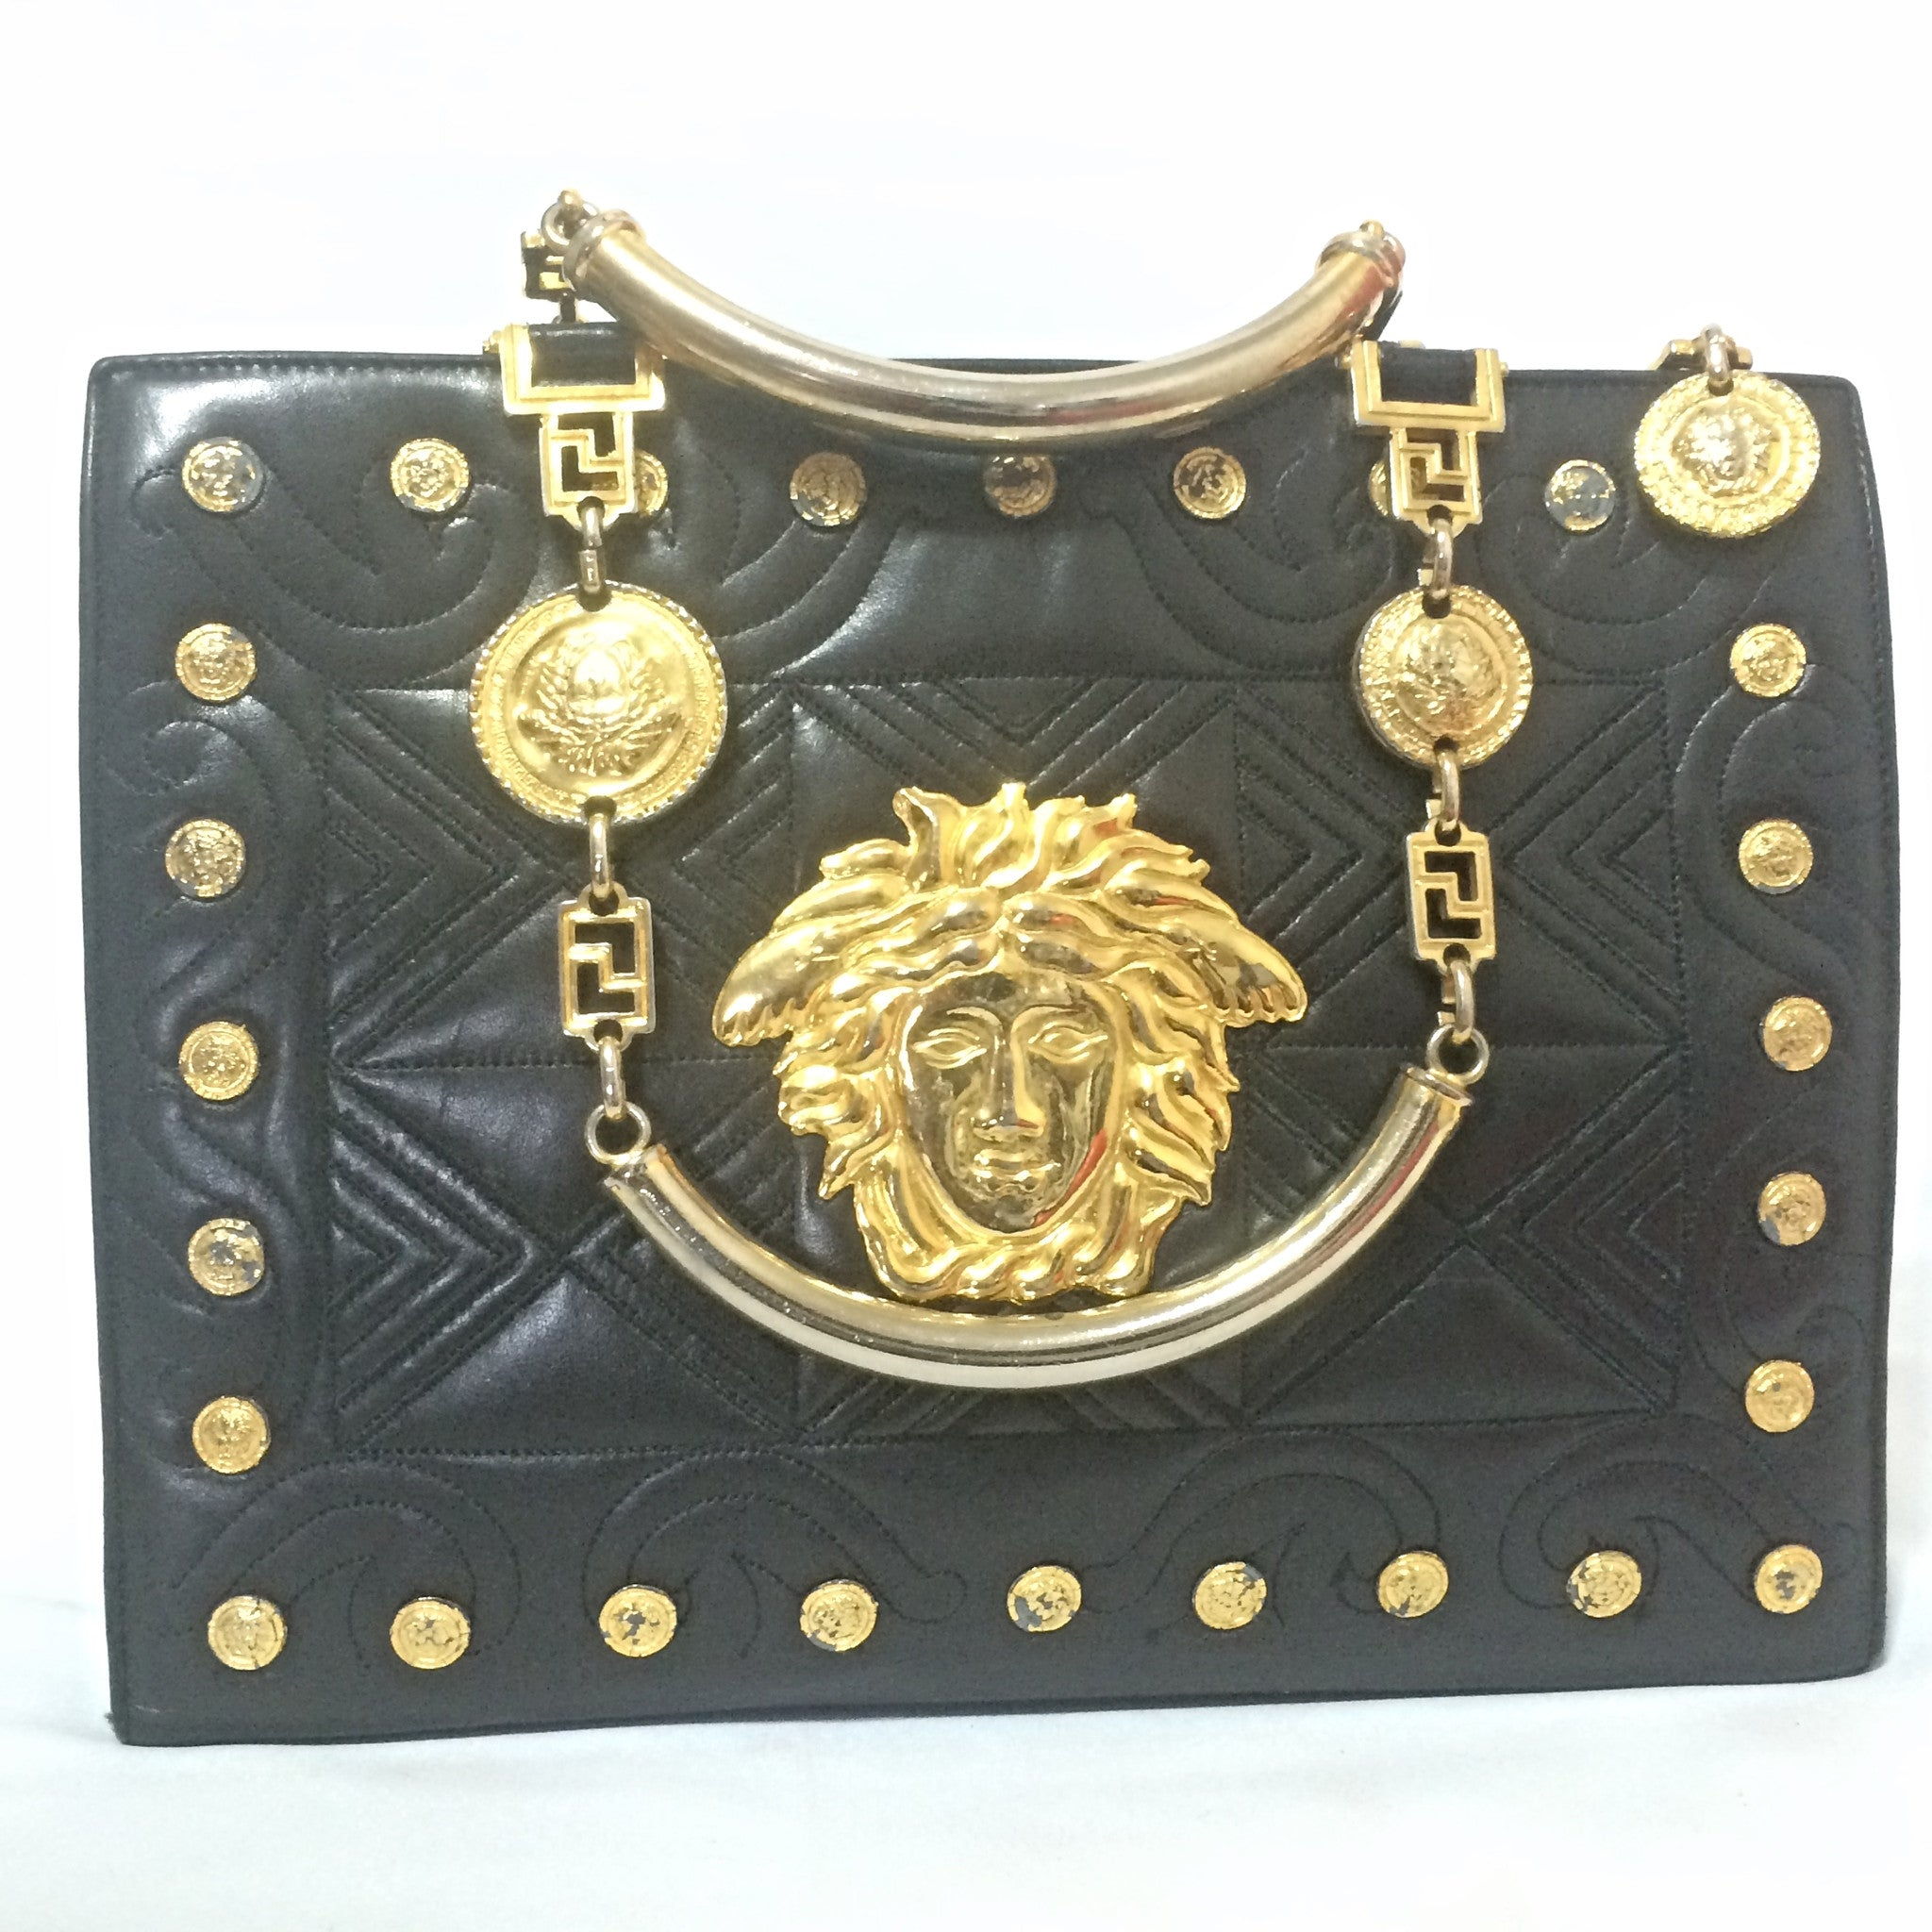 Vintage Gianni Versace black leather tote bag with big golden medusa charms, and gold tone hardwares. Too Gorgeous like Lady Gaga.